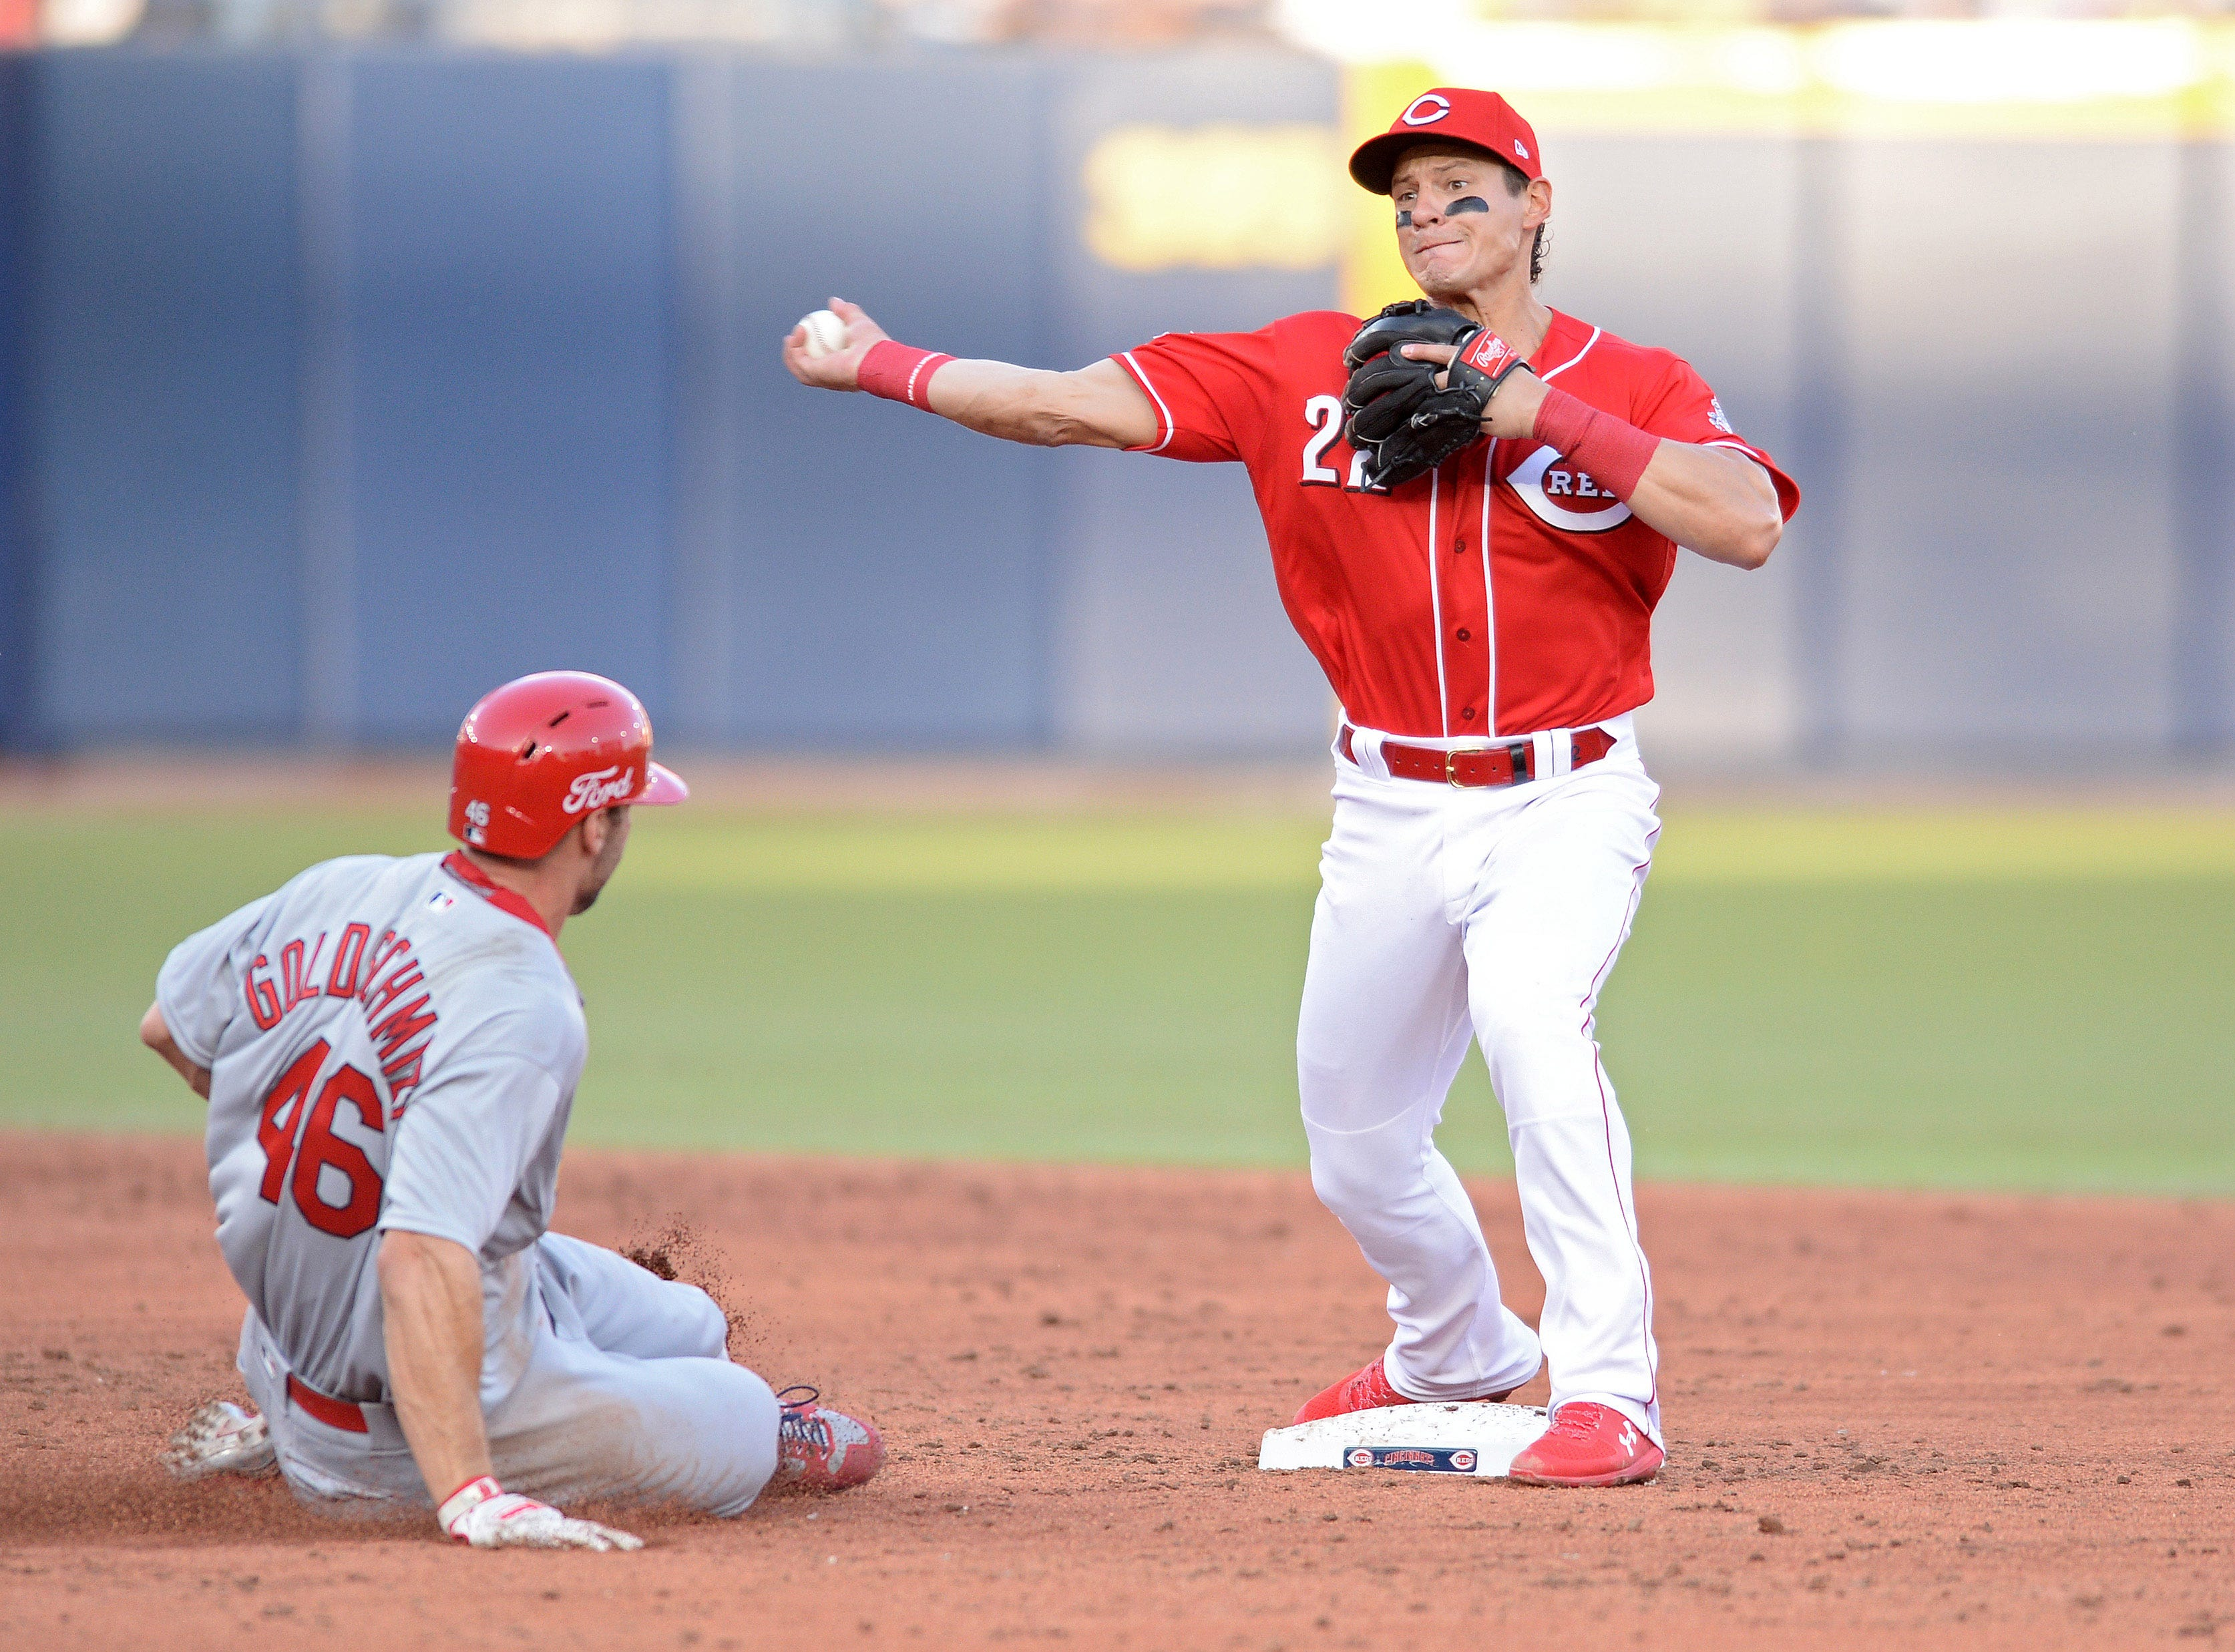 Cincinnati Reds second baseman Derek Dietrich (22) forces out St. Louis Cardinals first baseman Paul Goldschmidt (46) at second base before throwing to first base to complete the double play on a ball hit by left fielder Marcell Ozuna (not pictured) during the third inning at Estadio de Beisbol Monterrey.